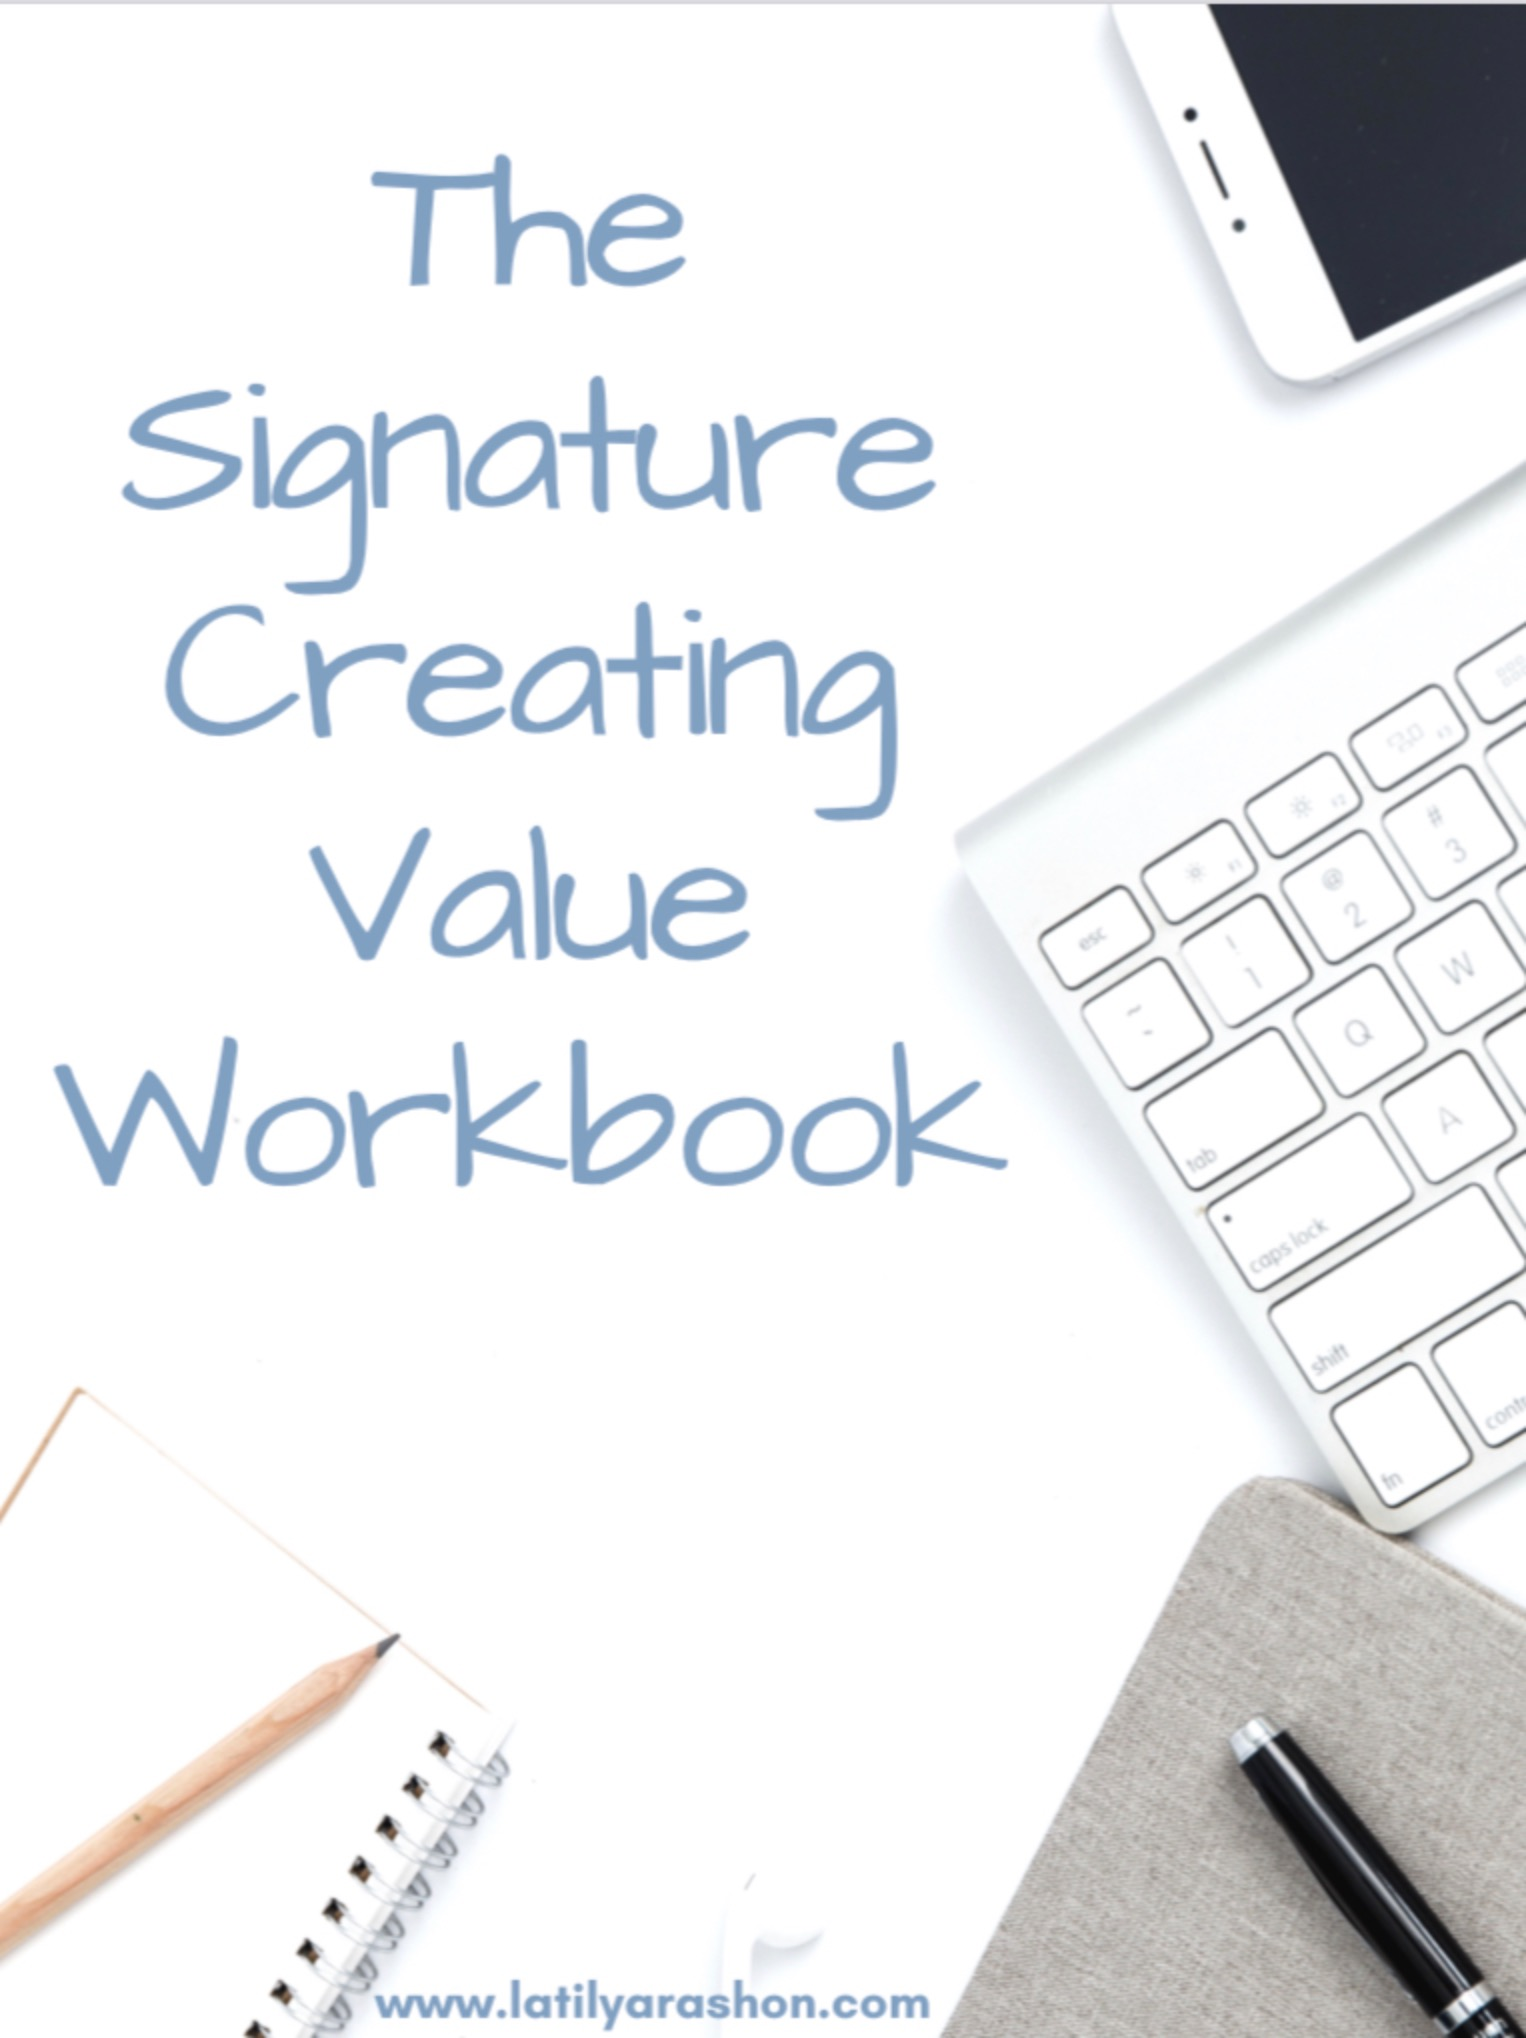 The Signature Creating Value Workbook